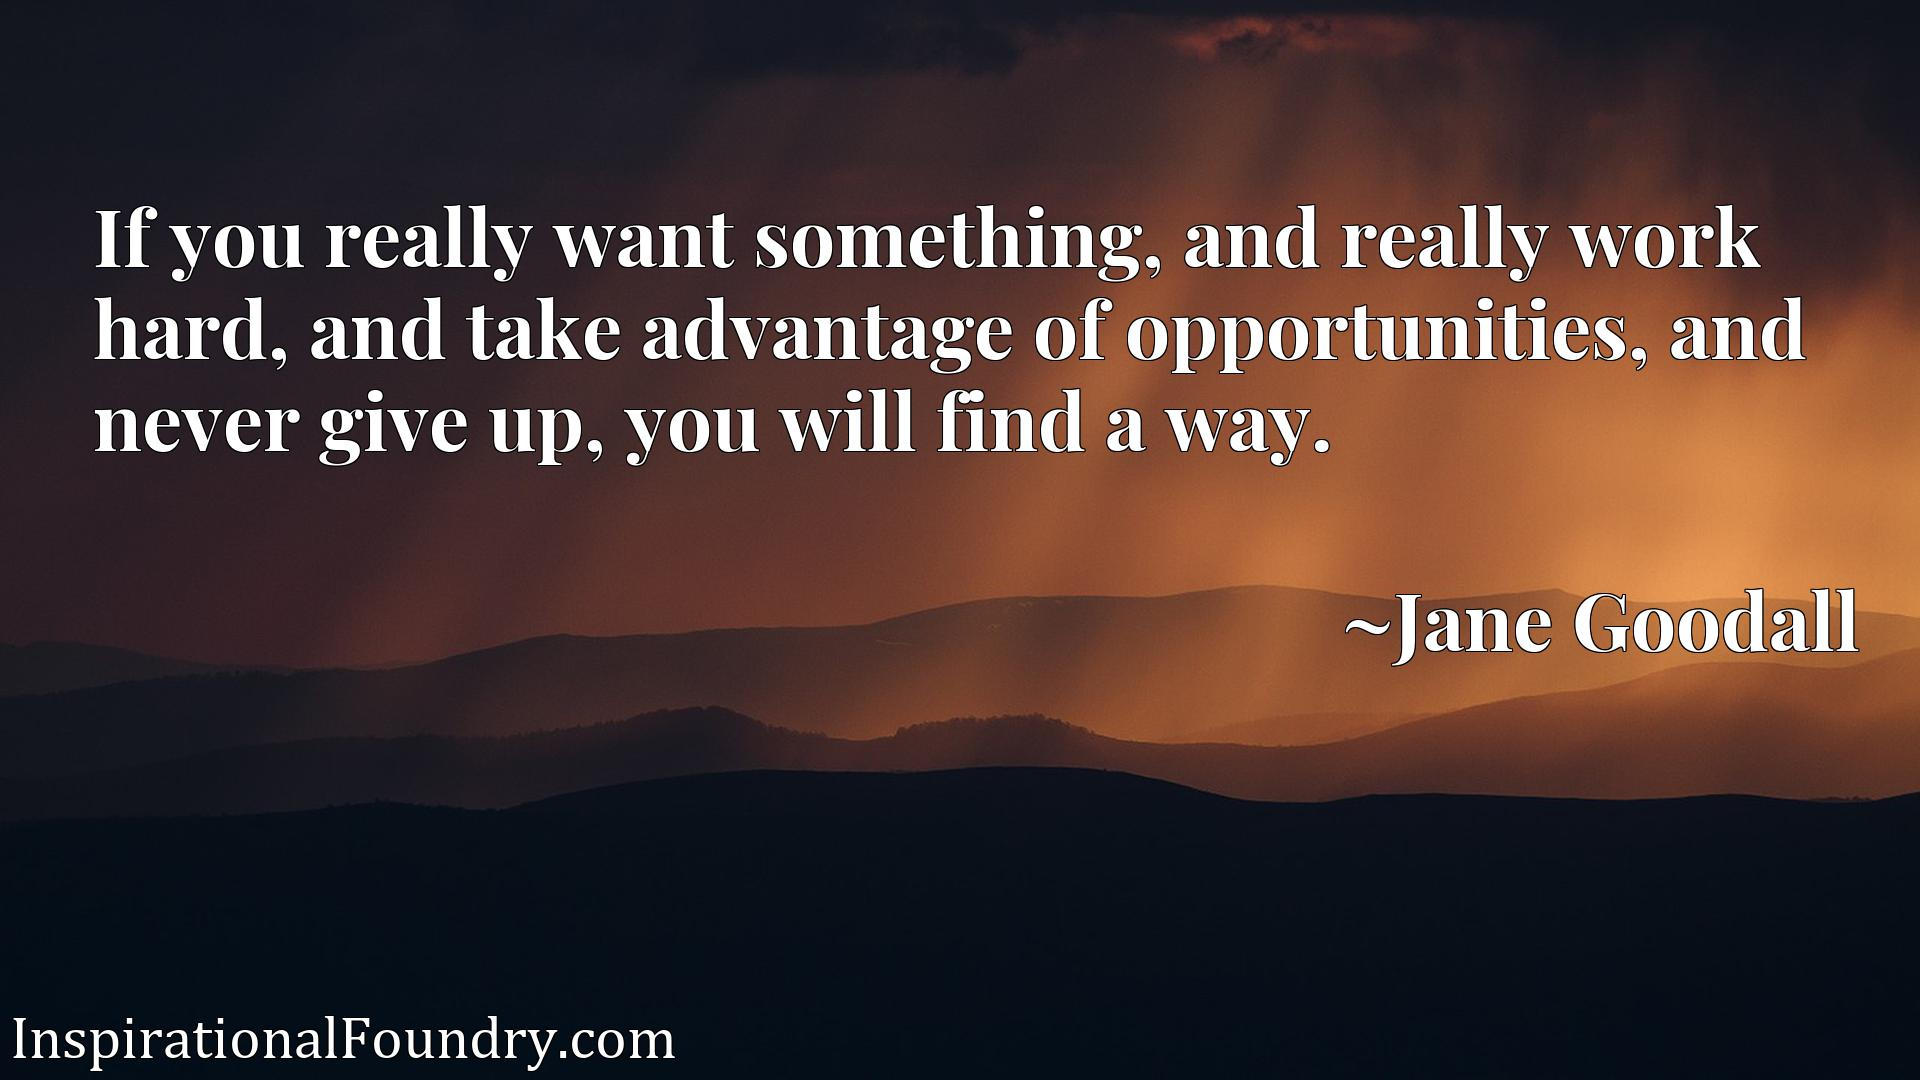 If you really want something, and really work hard, and take advantage of opportunities, and never give up, you will find a way.